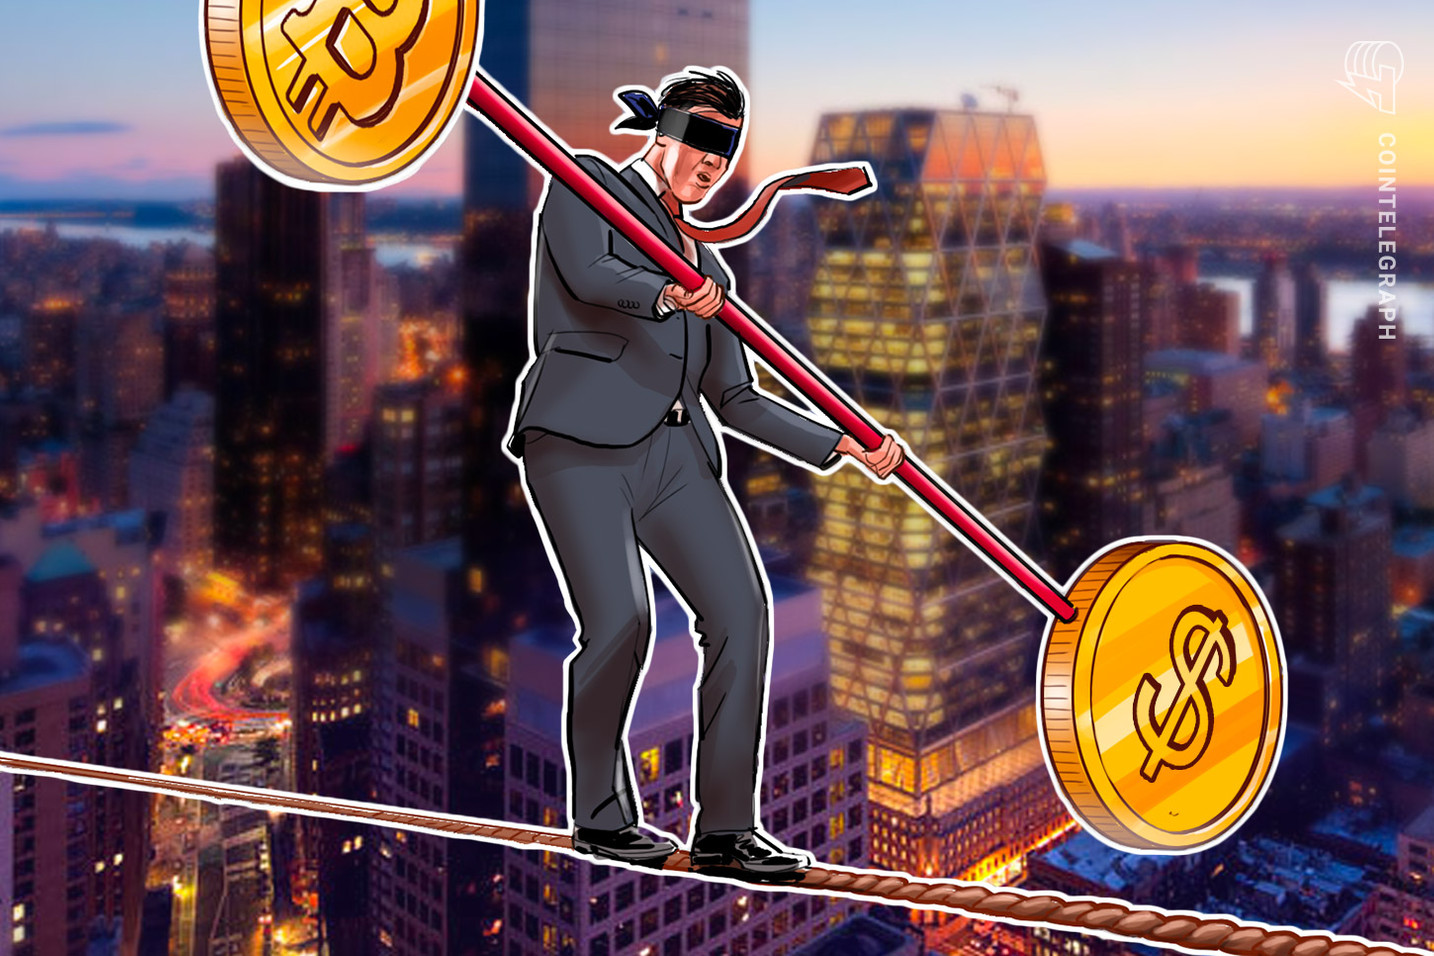 Central Banks to Hedge Dollar Risks with Bitcoin, Pompliano Predicts